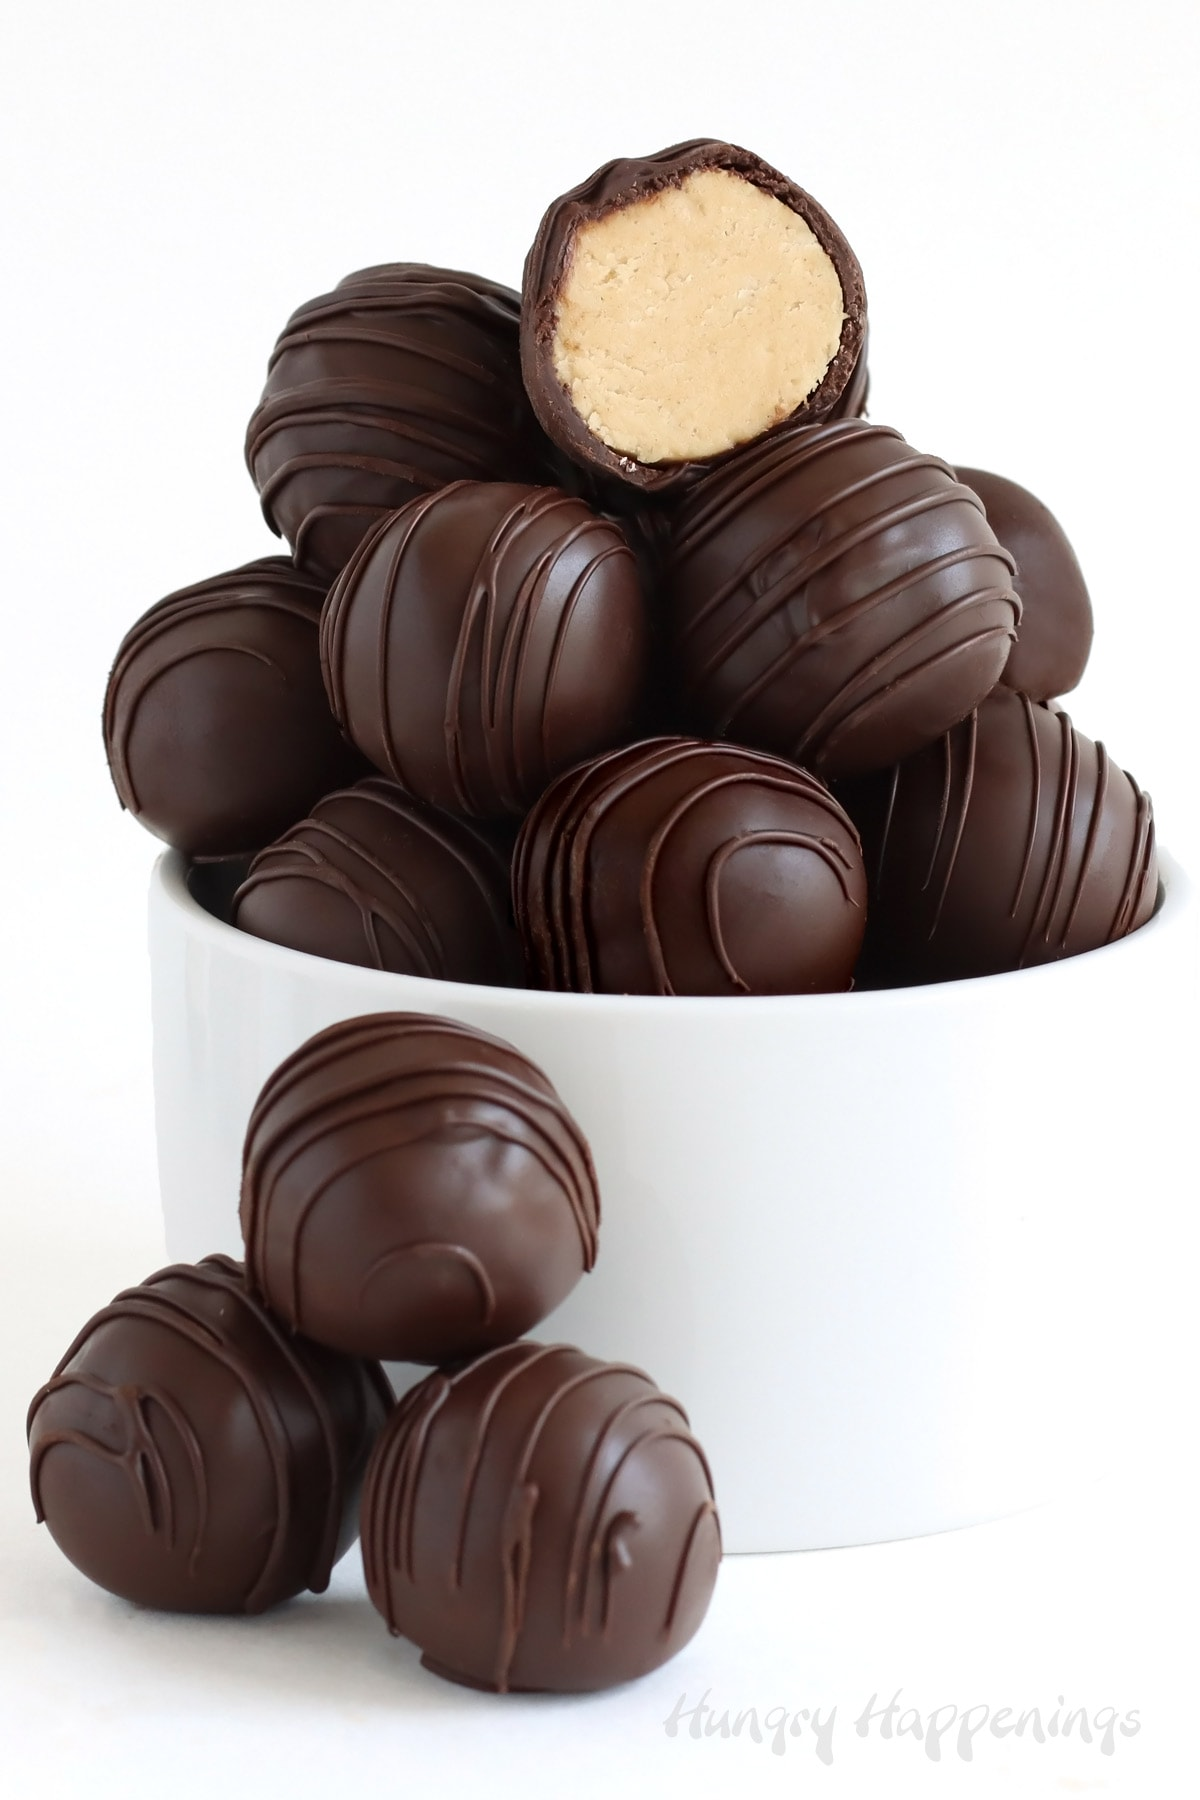 Chocolate dipped peanut butter balls drizzled with dark chocolate.